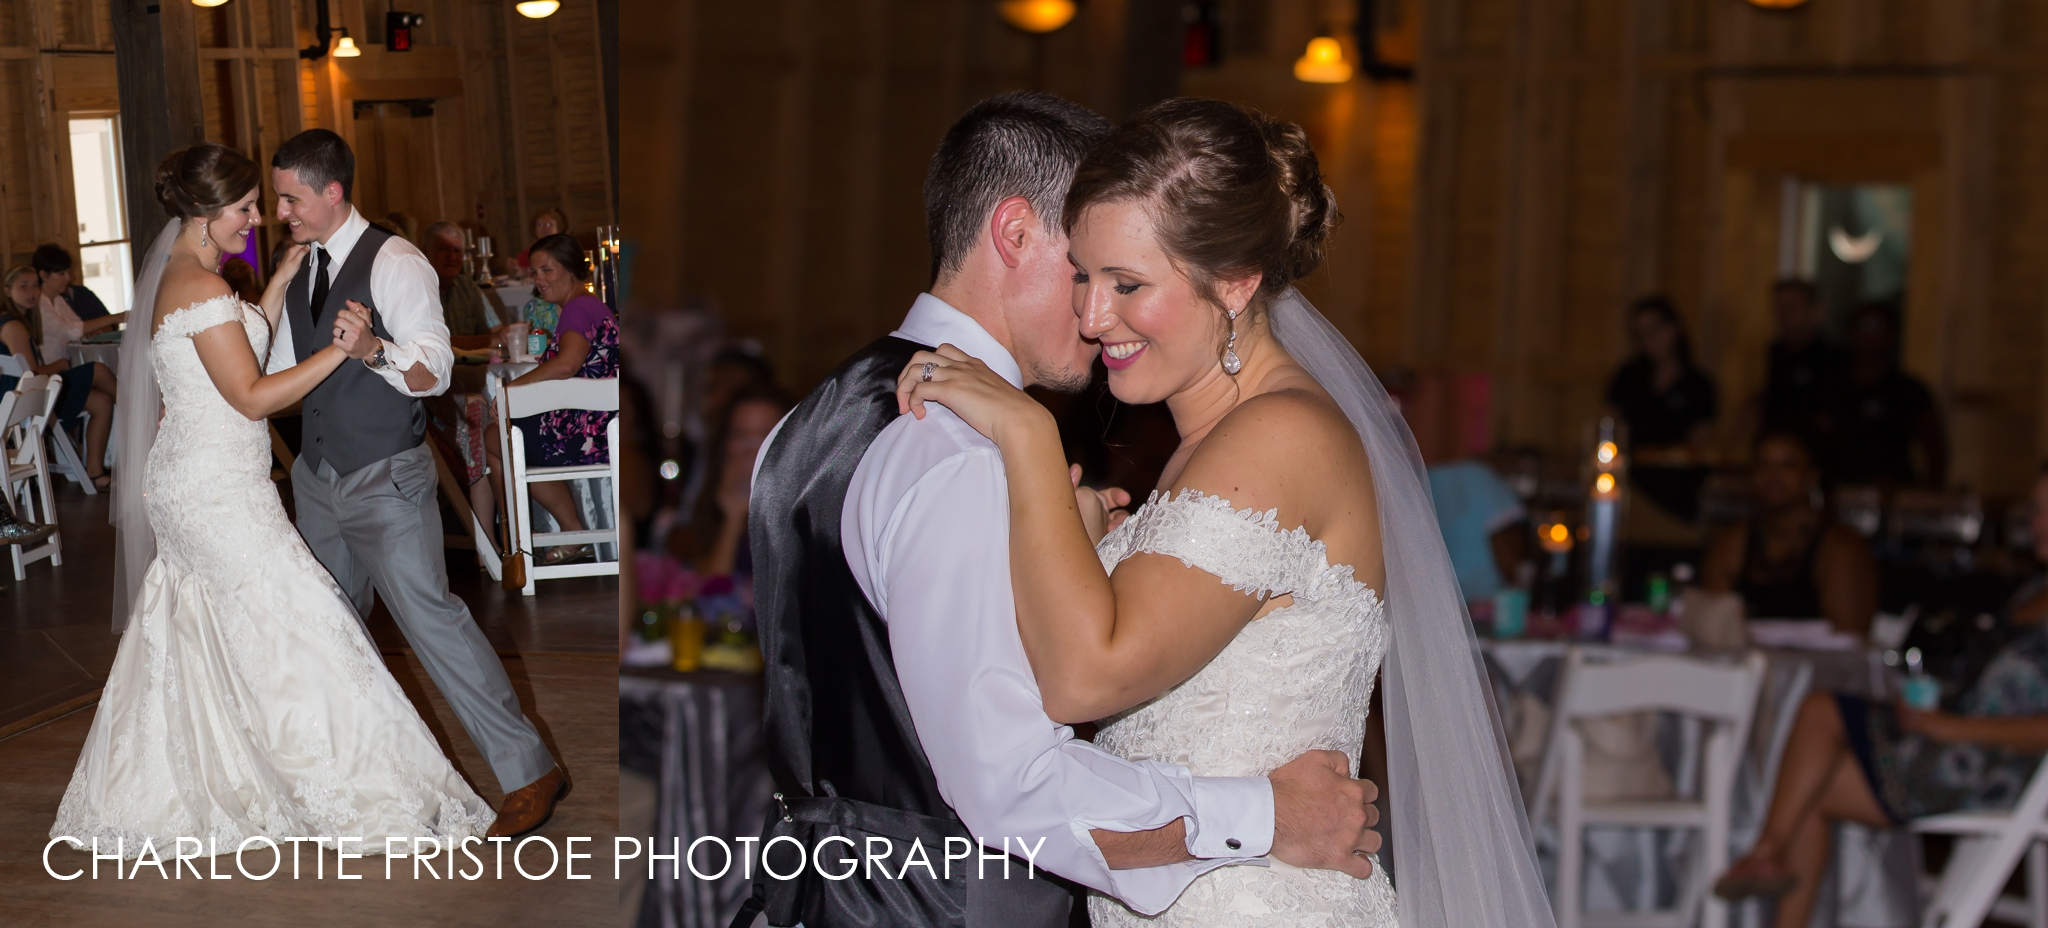 Tallahassee Wedding Photographer_0277.jpg